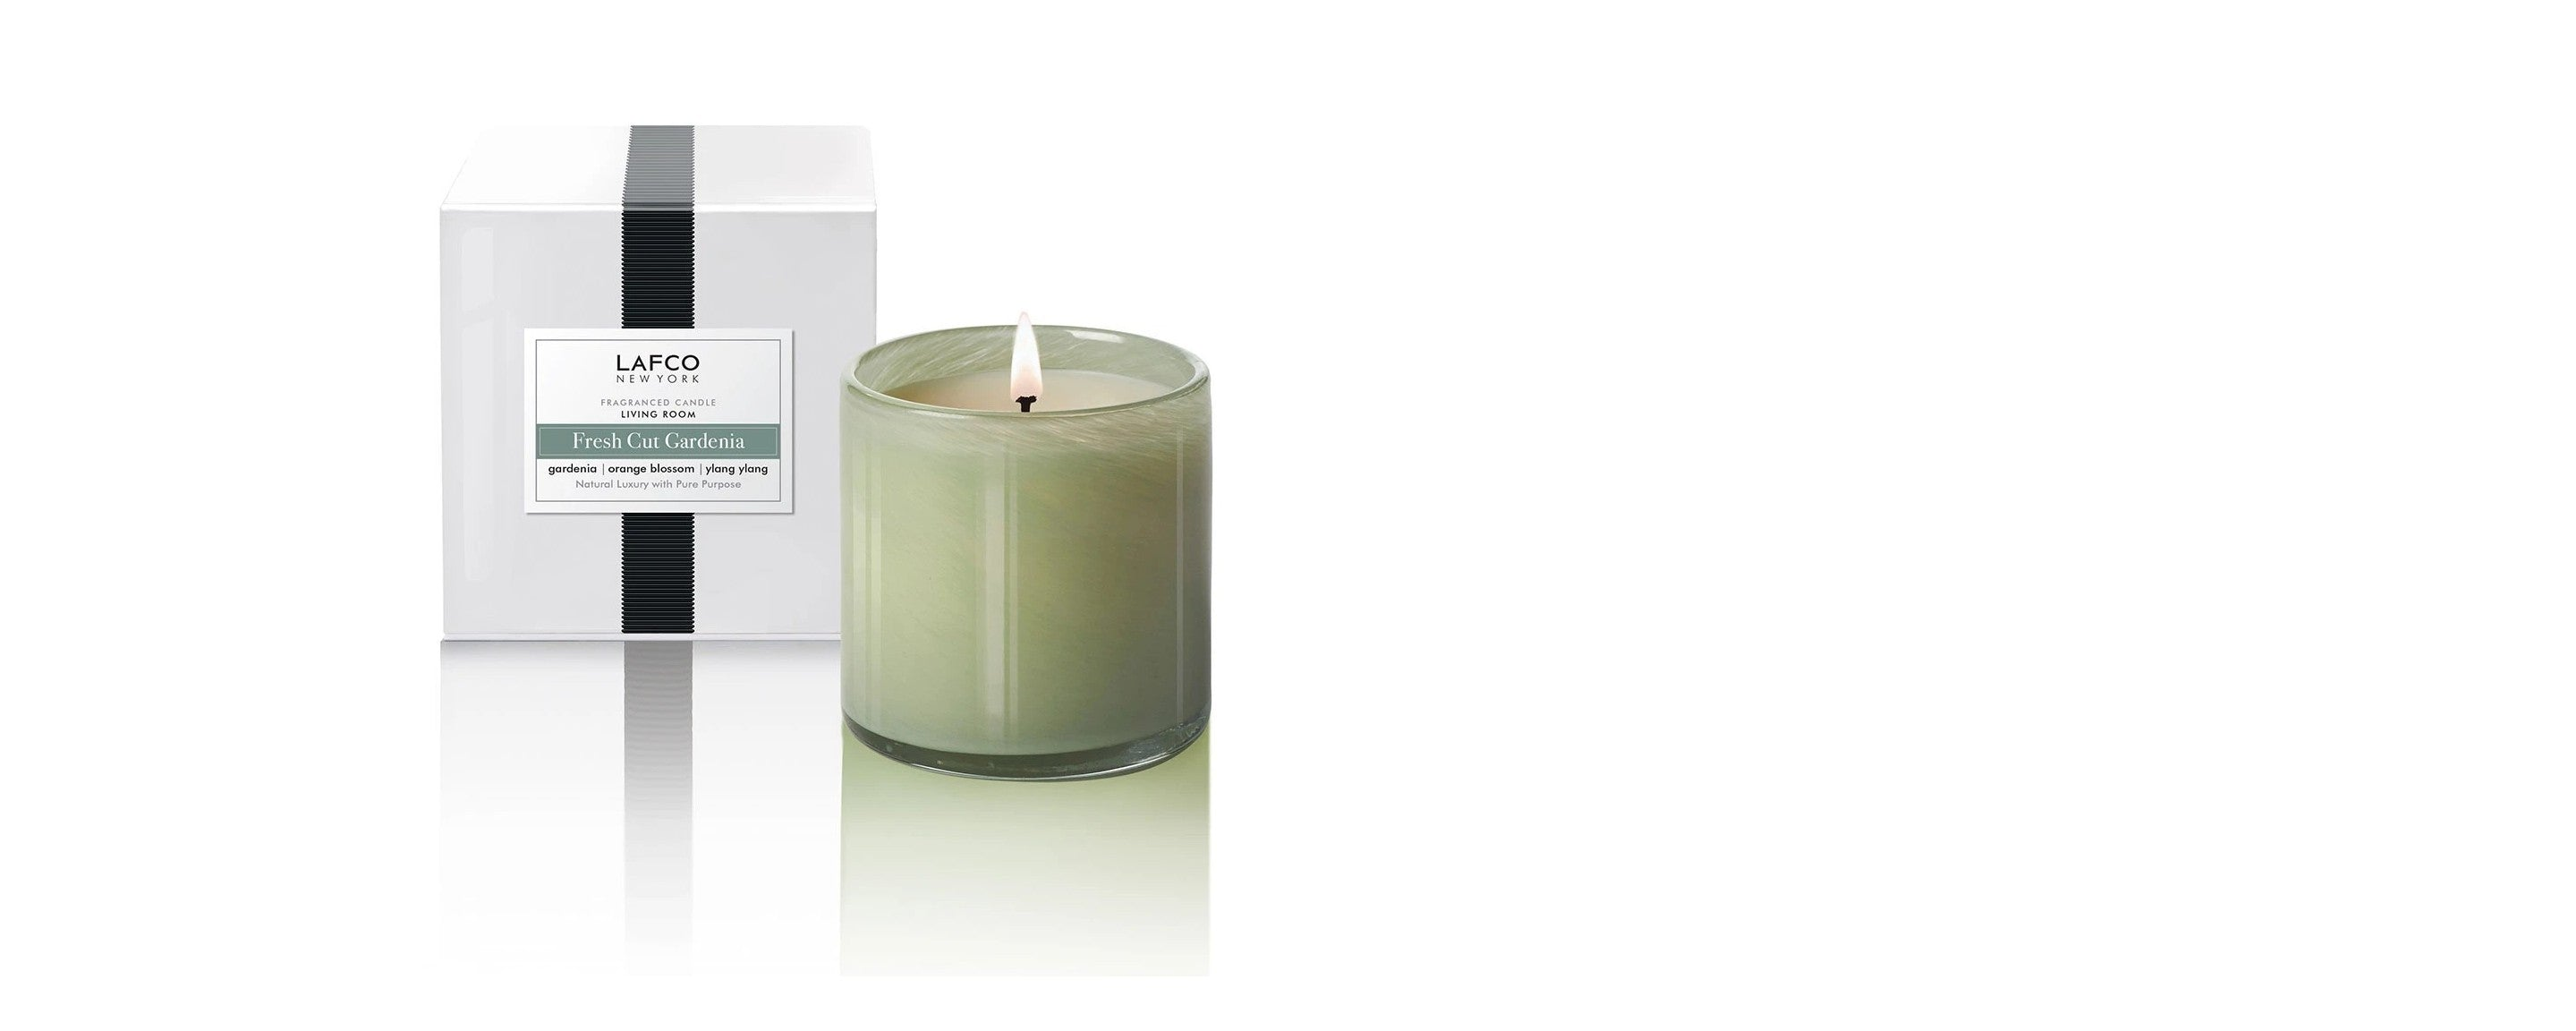 fresh cut gardenia living room candle by lafco new york